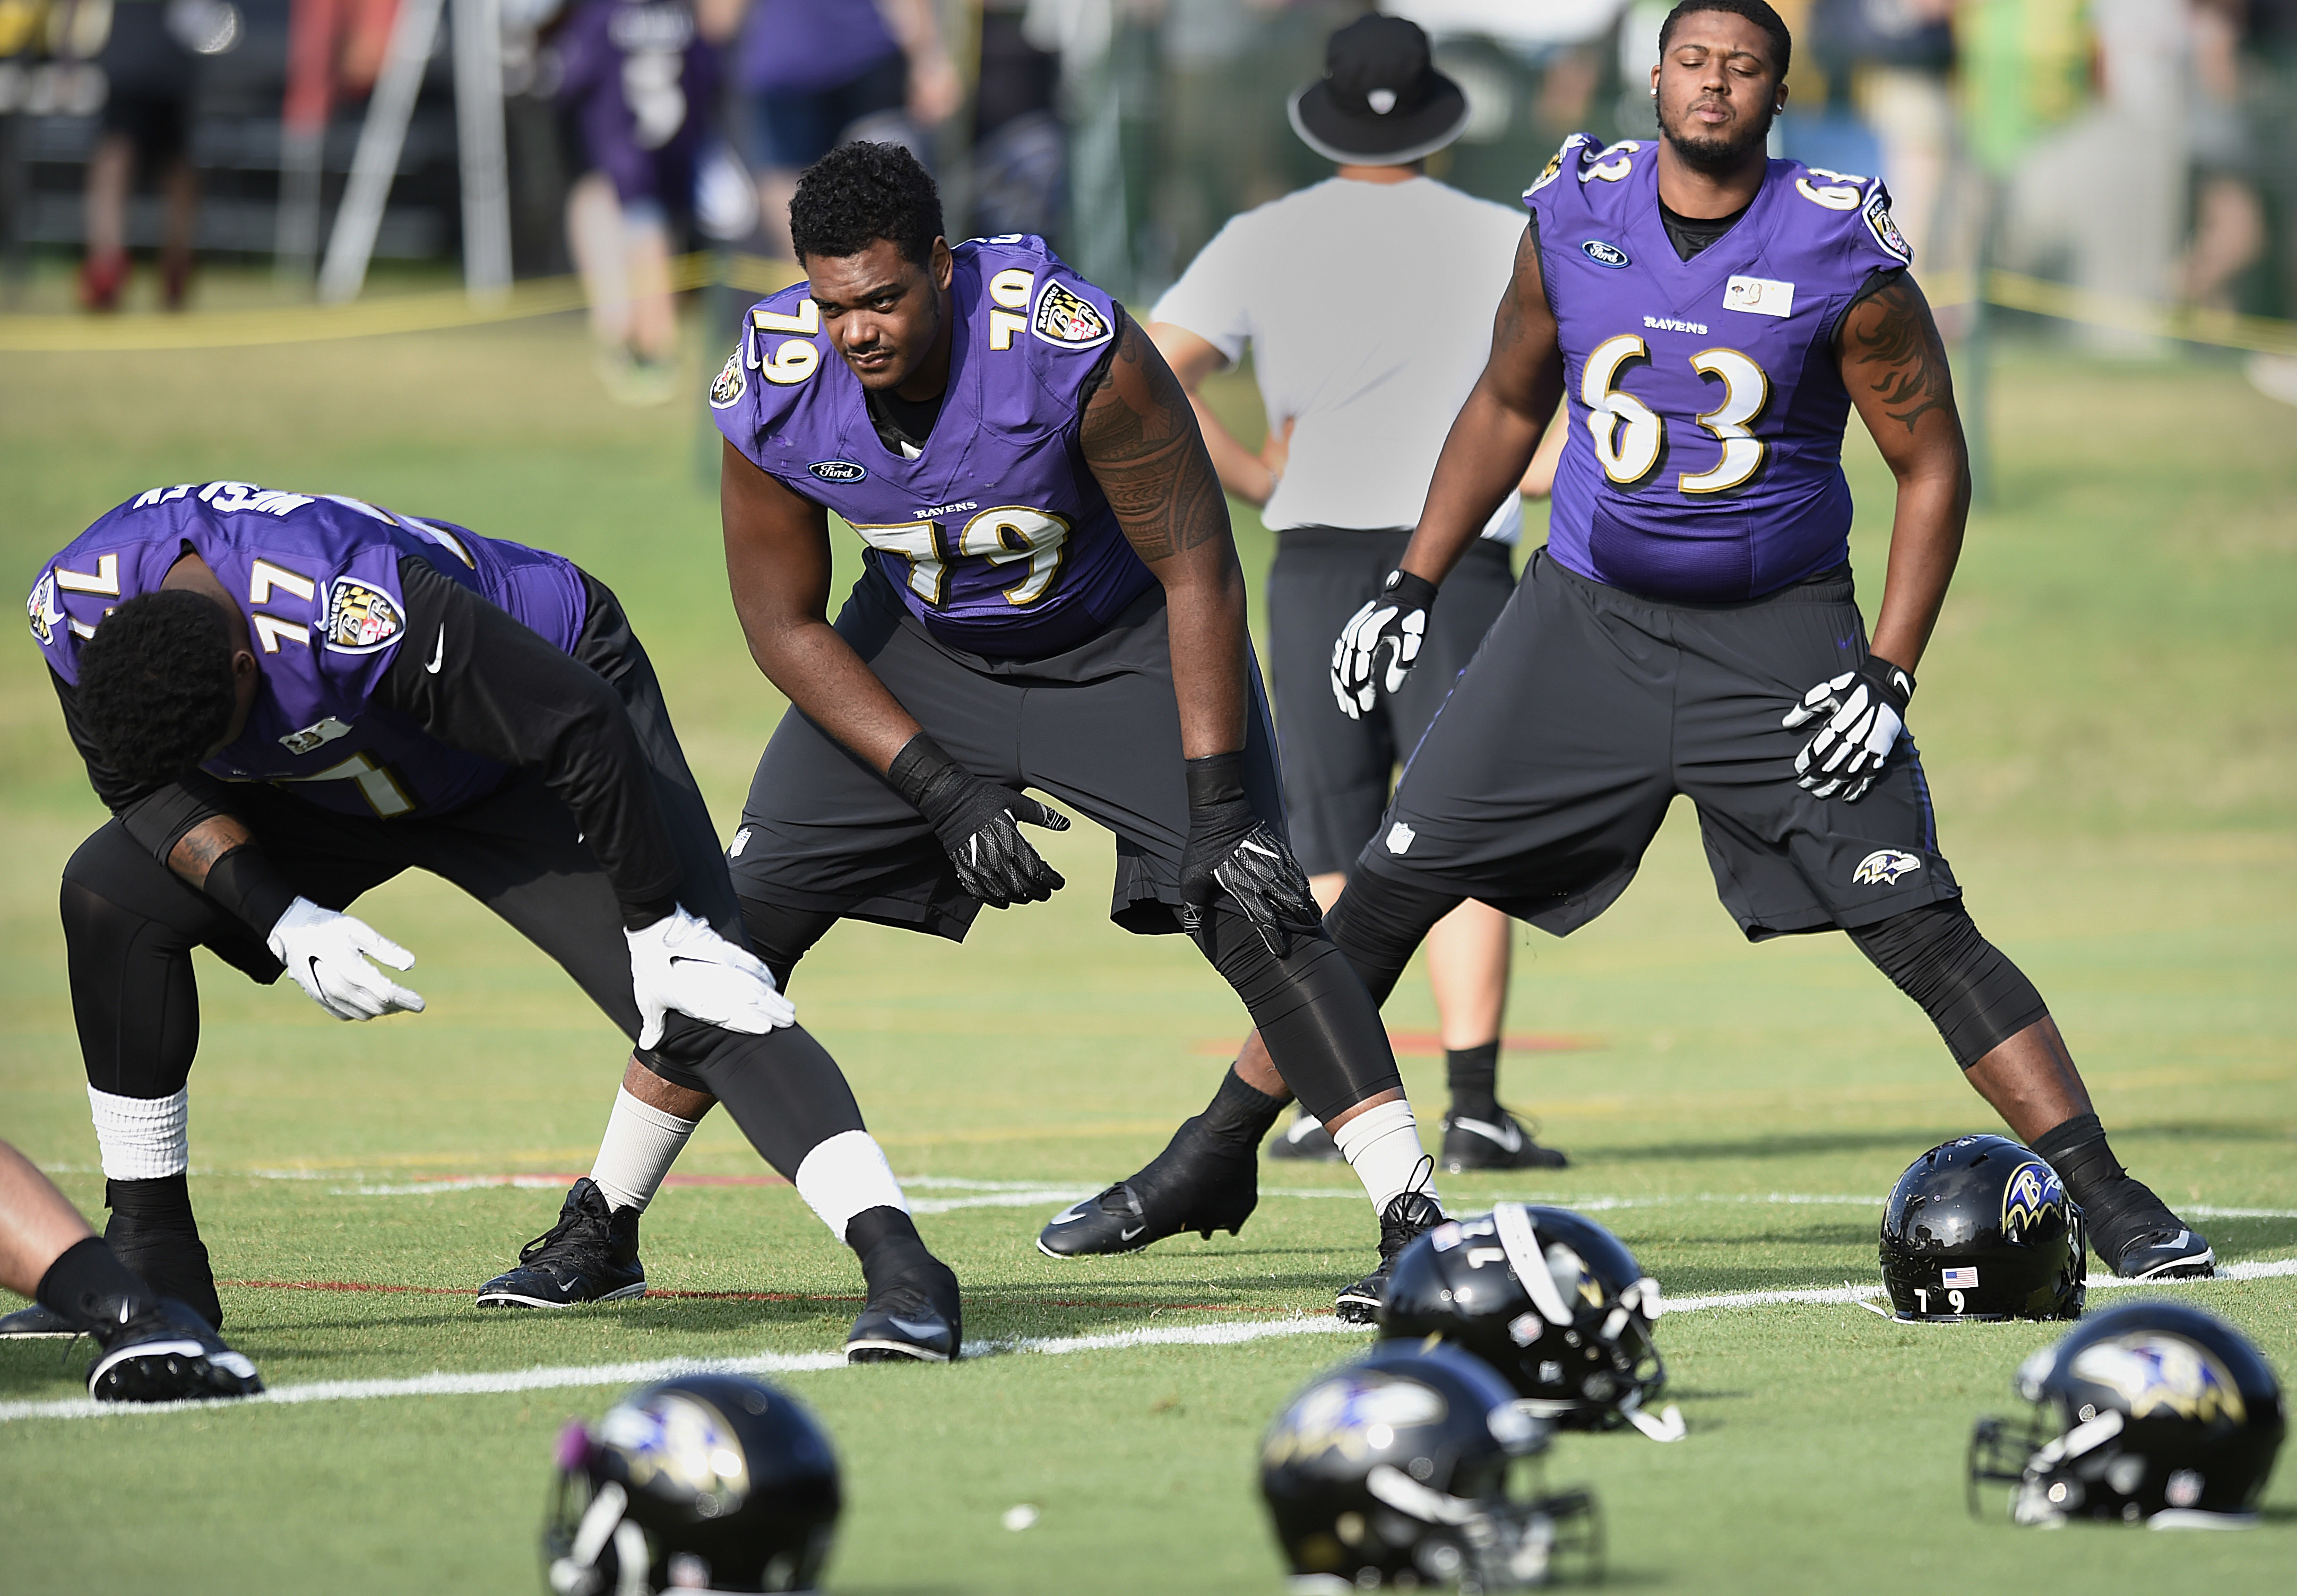 Baltimore Ravens tackle Ronnie Stanley, center, warms up during NFL football training camp in Owings Mills, Md., Wednesday, Aug. 3, 2016. (AP Photo/Gail Burton)